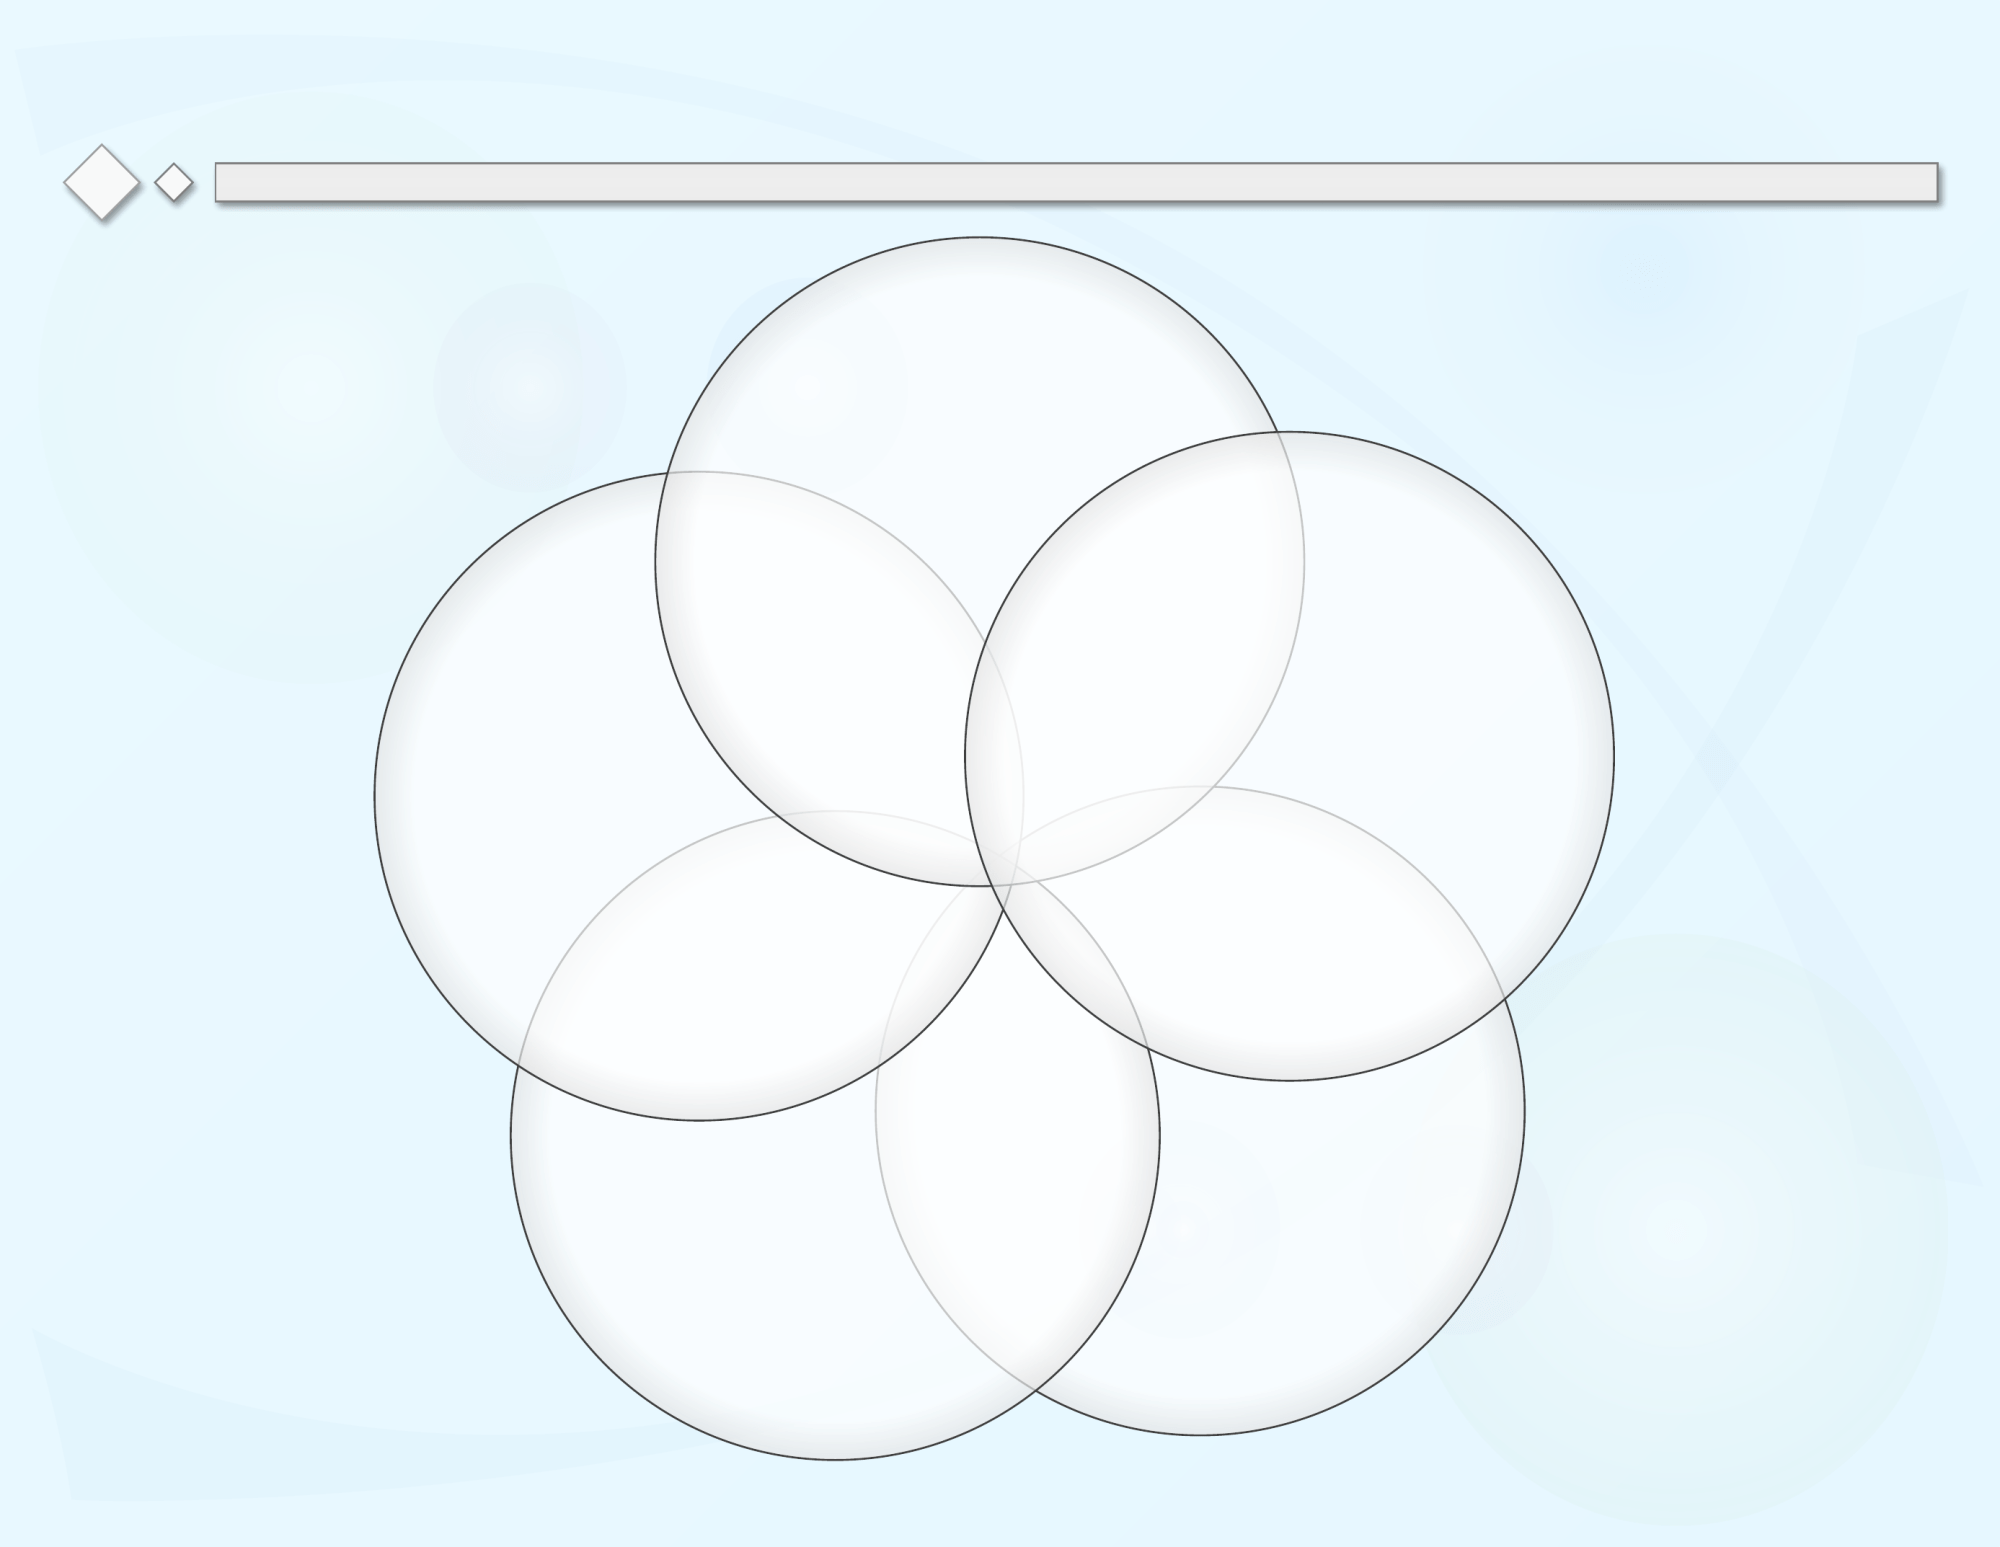 hight resolution of 6 circles venn diagram template free download